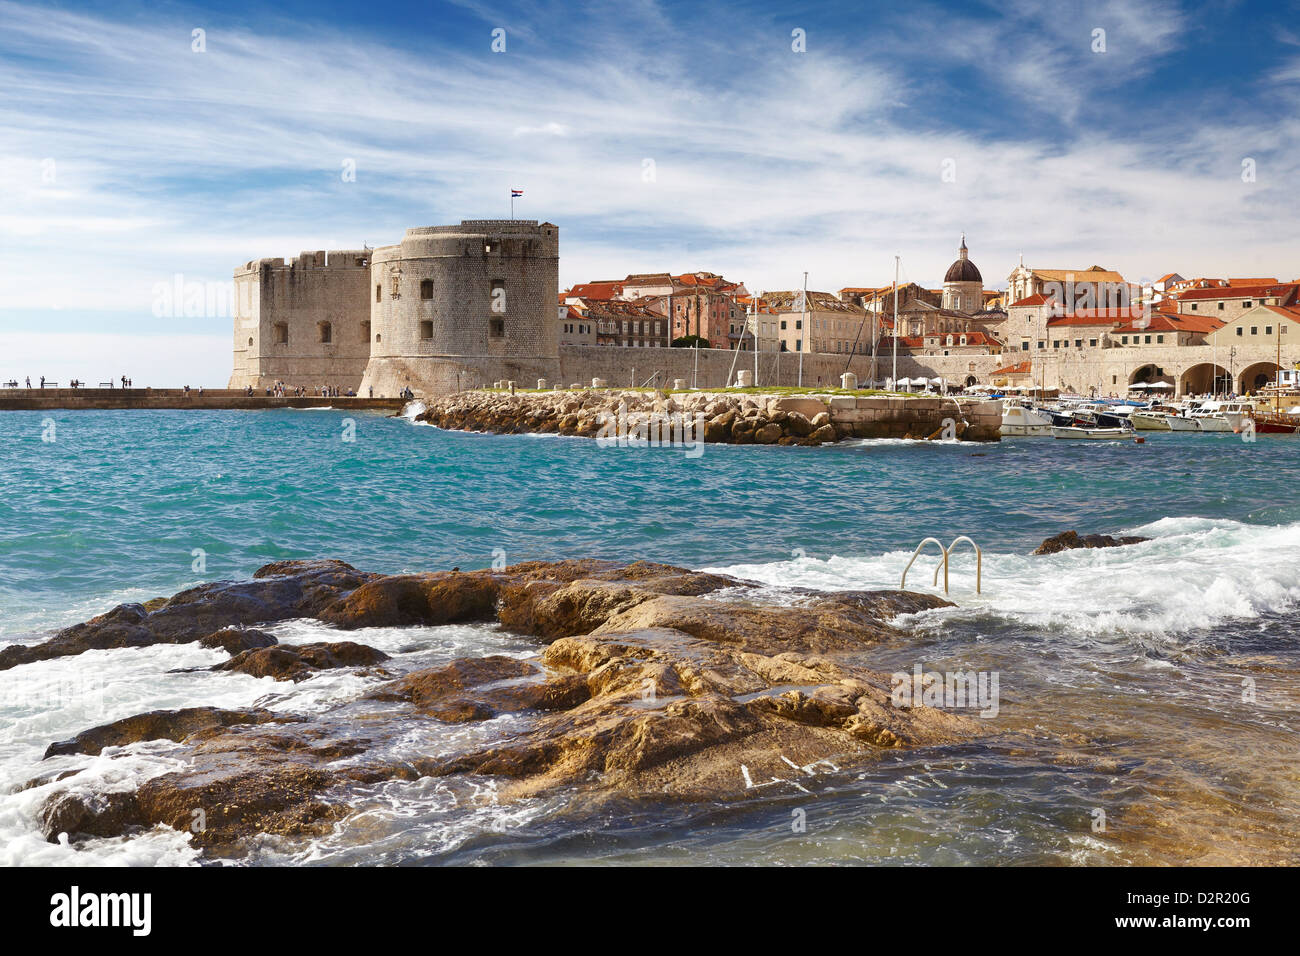 Dubrovnik Old Town City, view at Harbour, Croatia - Stock Image